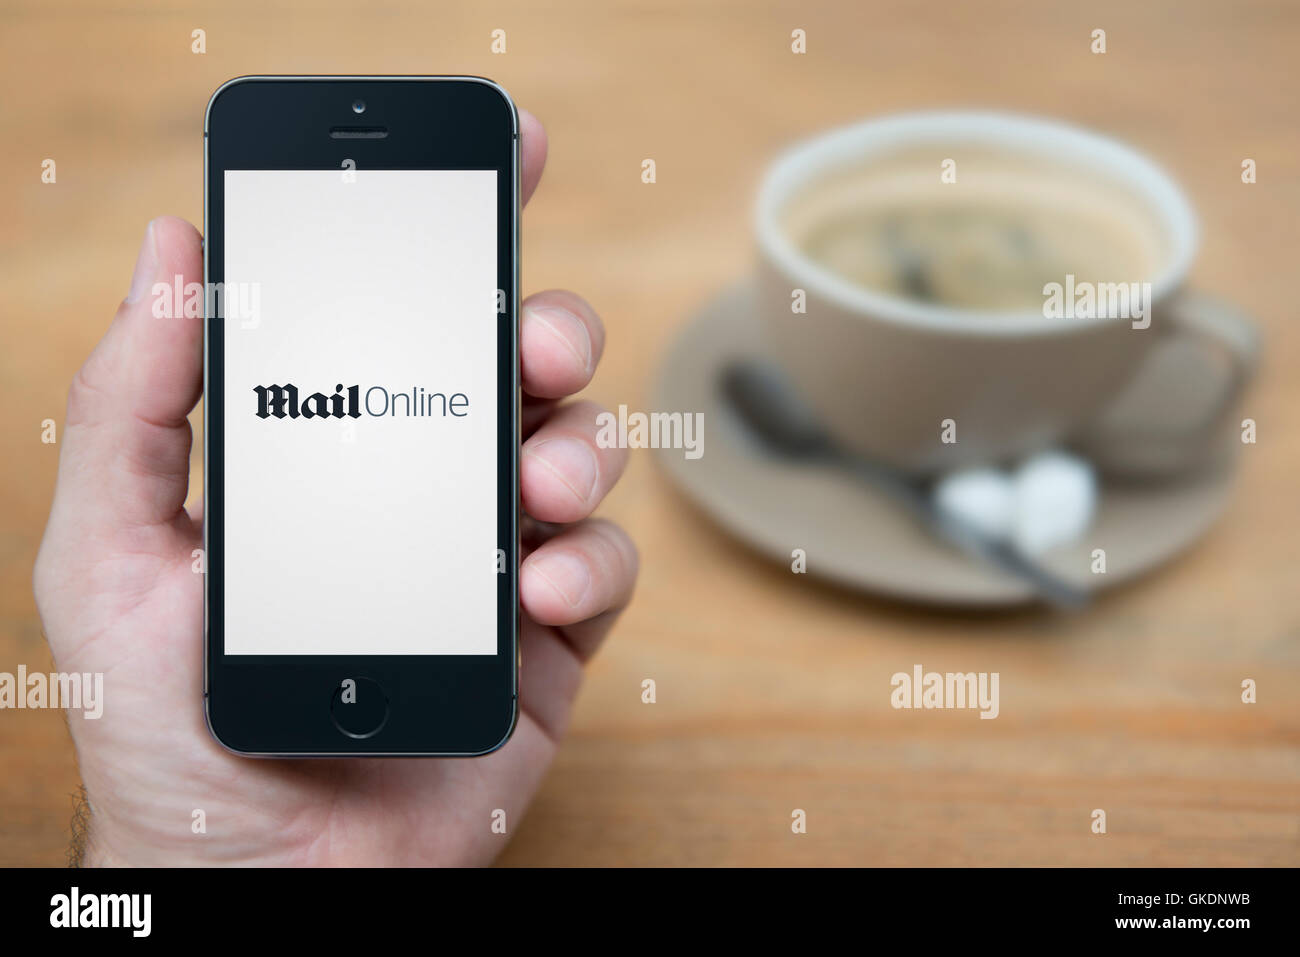 A man looks at his iPhone which displays the Mail Online logo, while sat with a cup of coffee (Editorial use only). - Stock Image